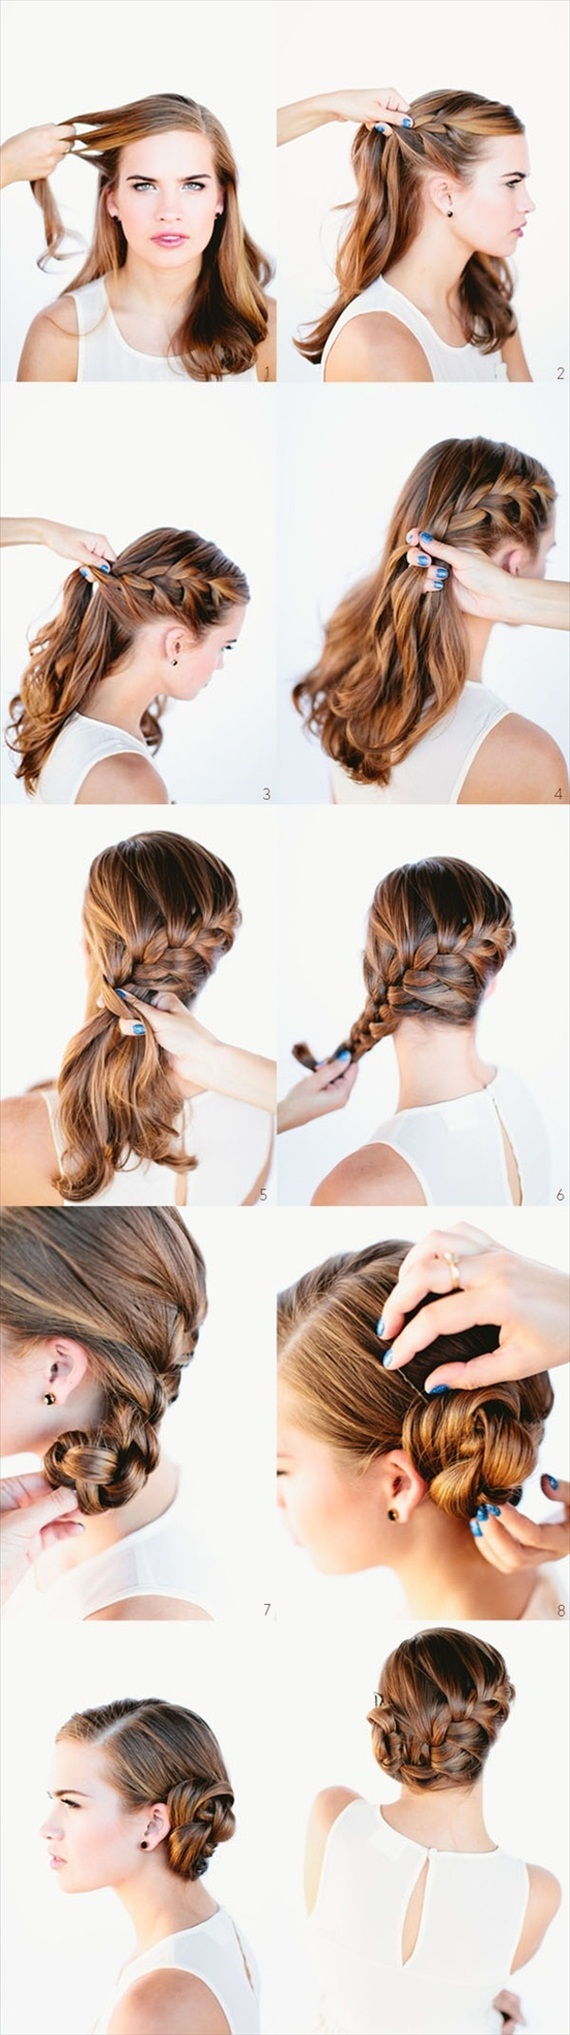 DIY Braided Bun / Chignon - Easy Wedding DIYs